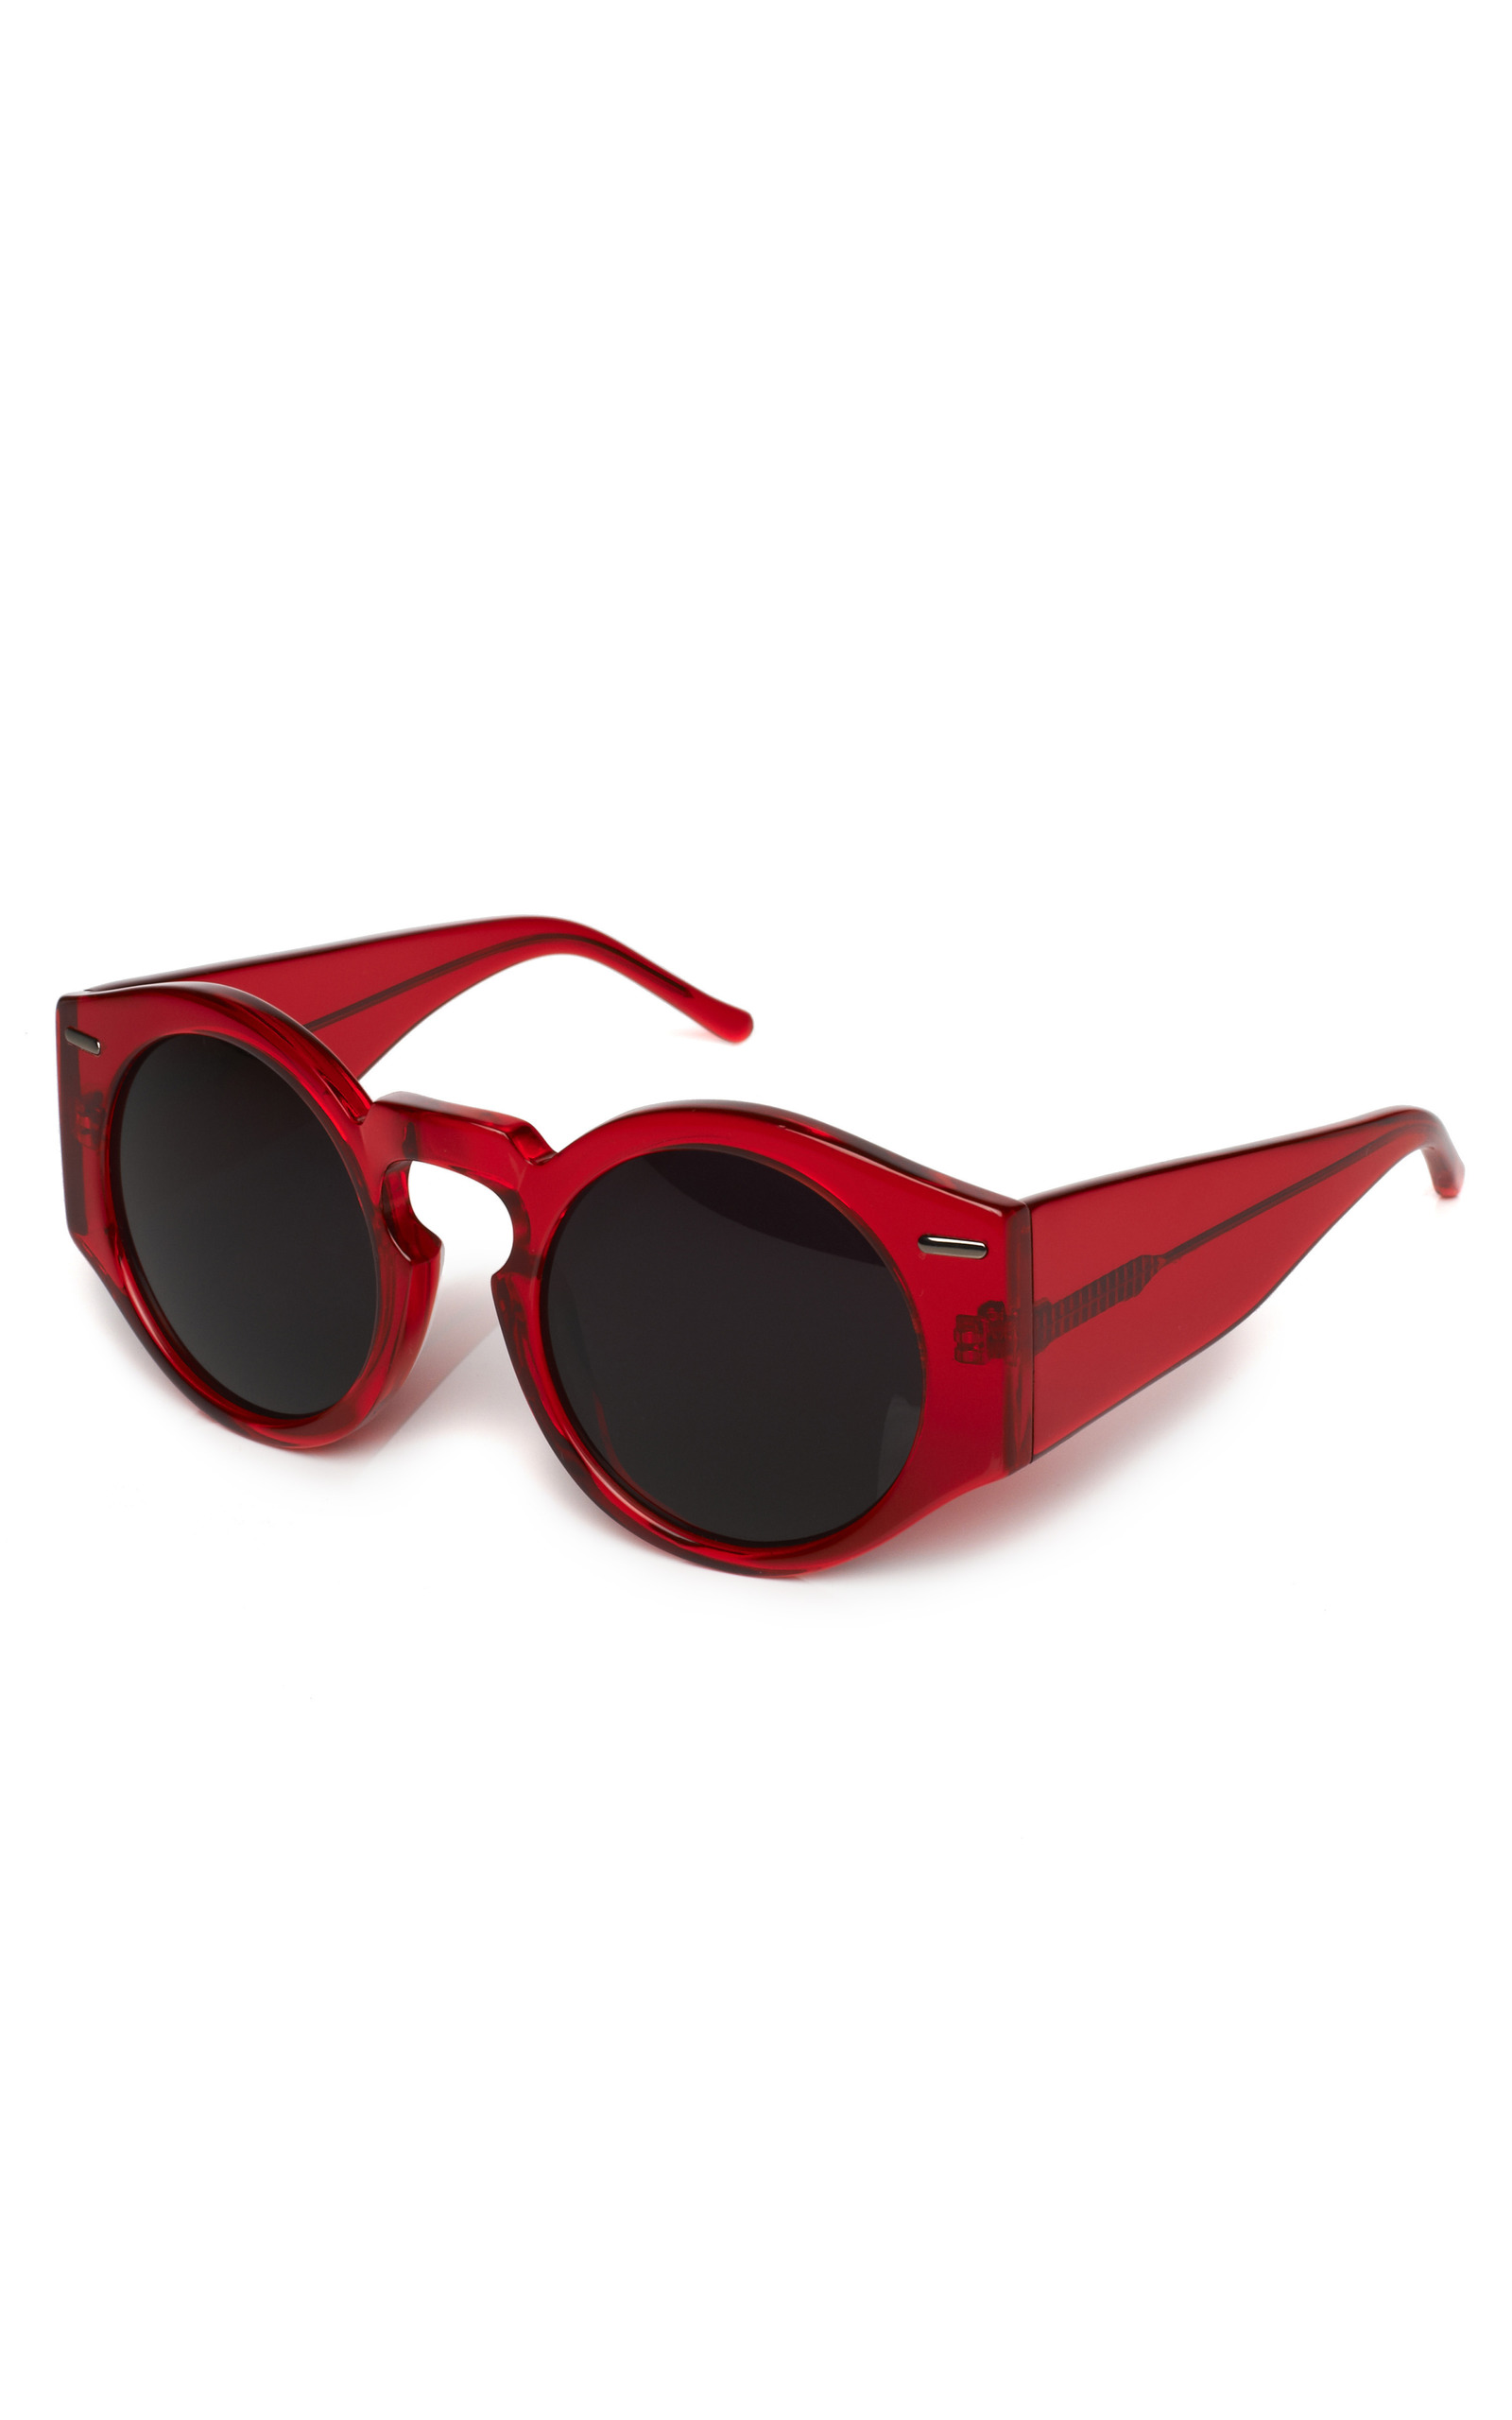 ed1eb29133 Buy Red Aviator Sunglasses « One More Soul